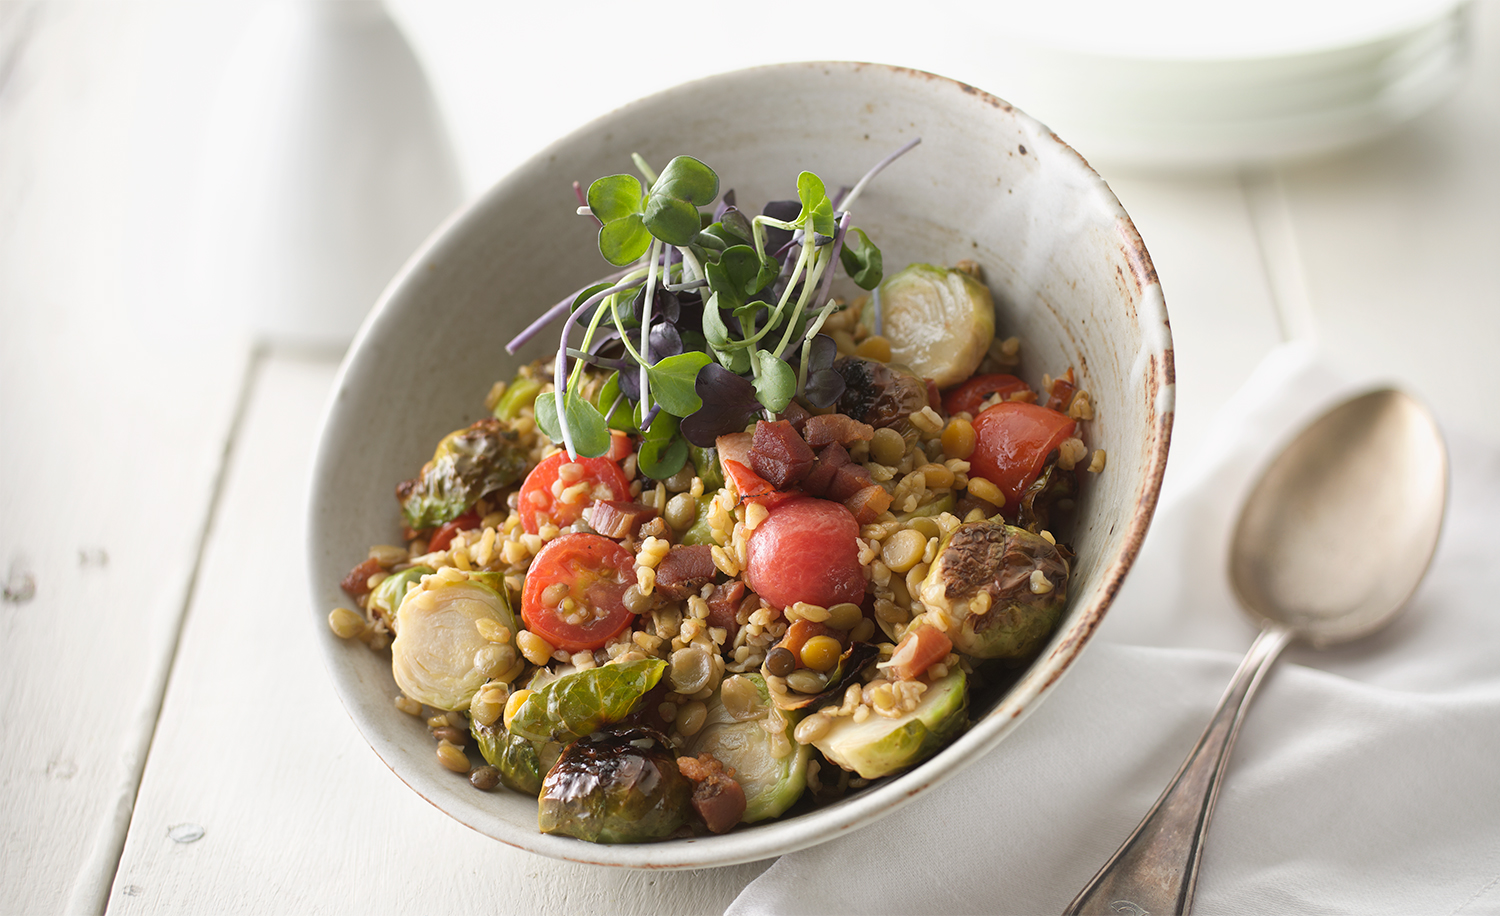 Brussel Sprout Lentil Salad | Tony Kubat Photography